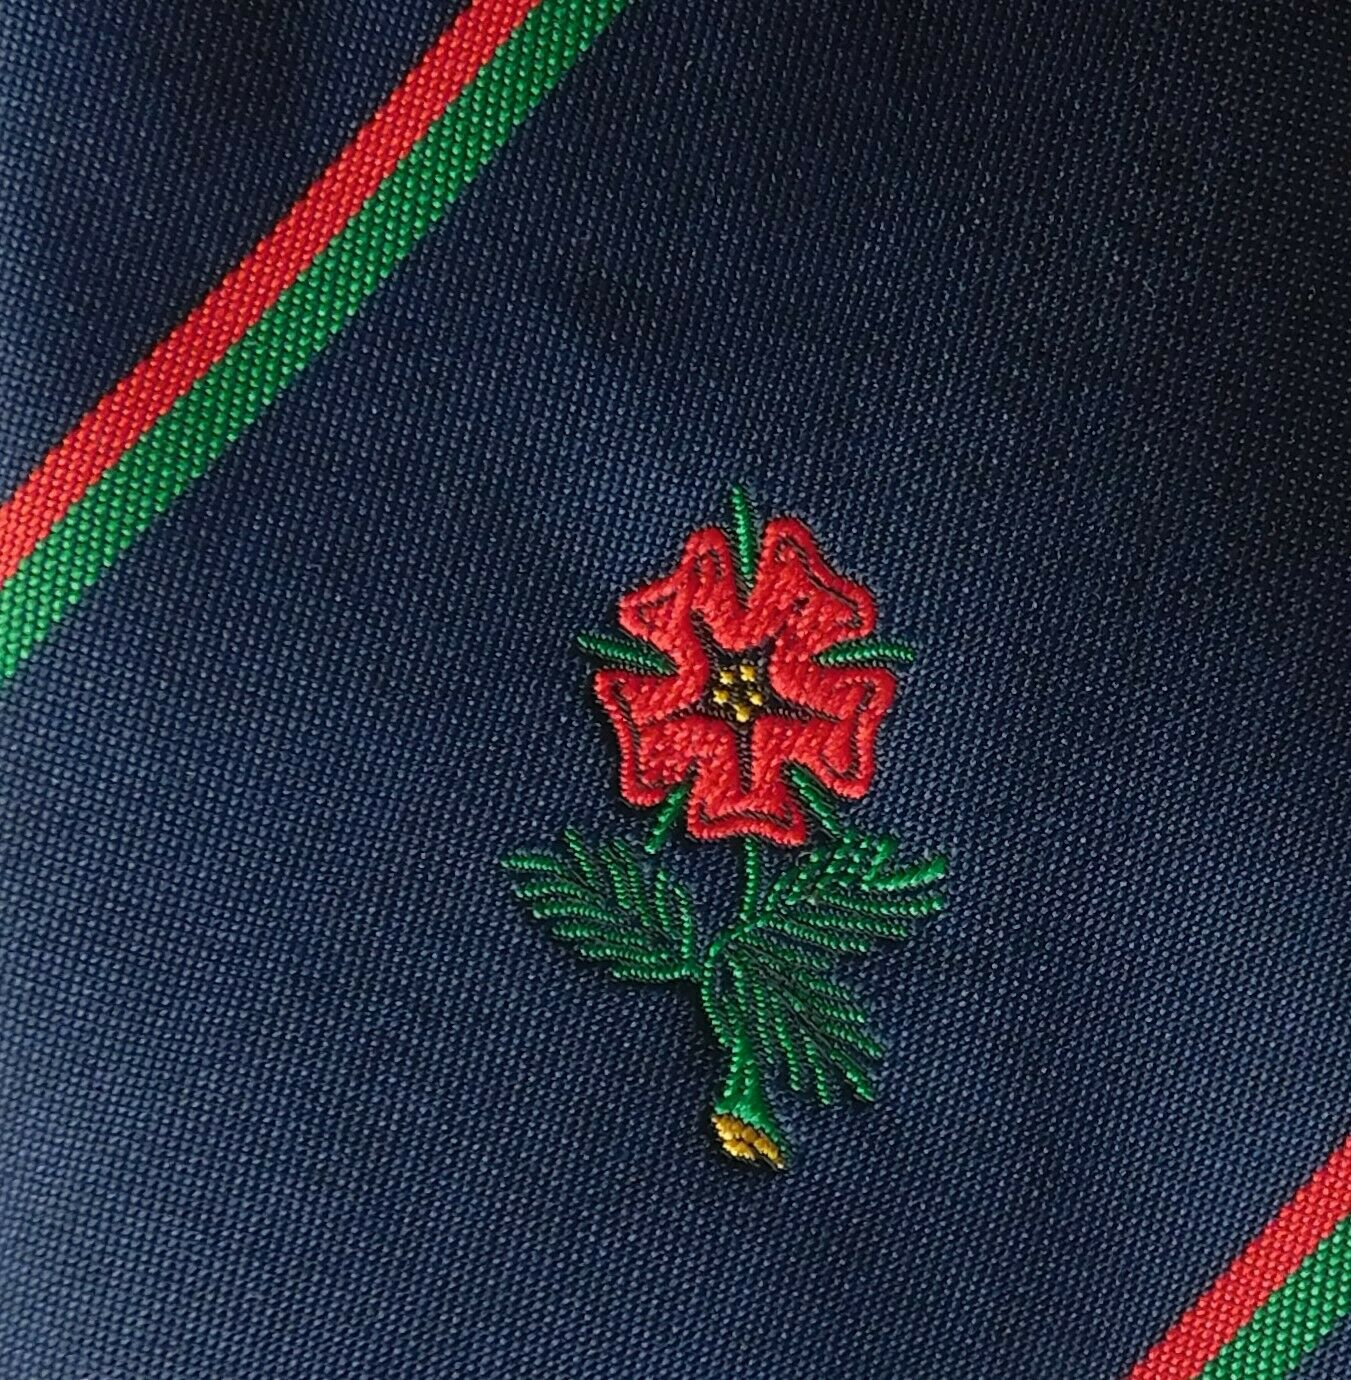 Vintage tie with red flower rose? possibly rugby club company logo badge emblem